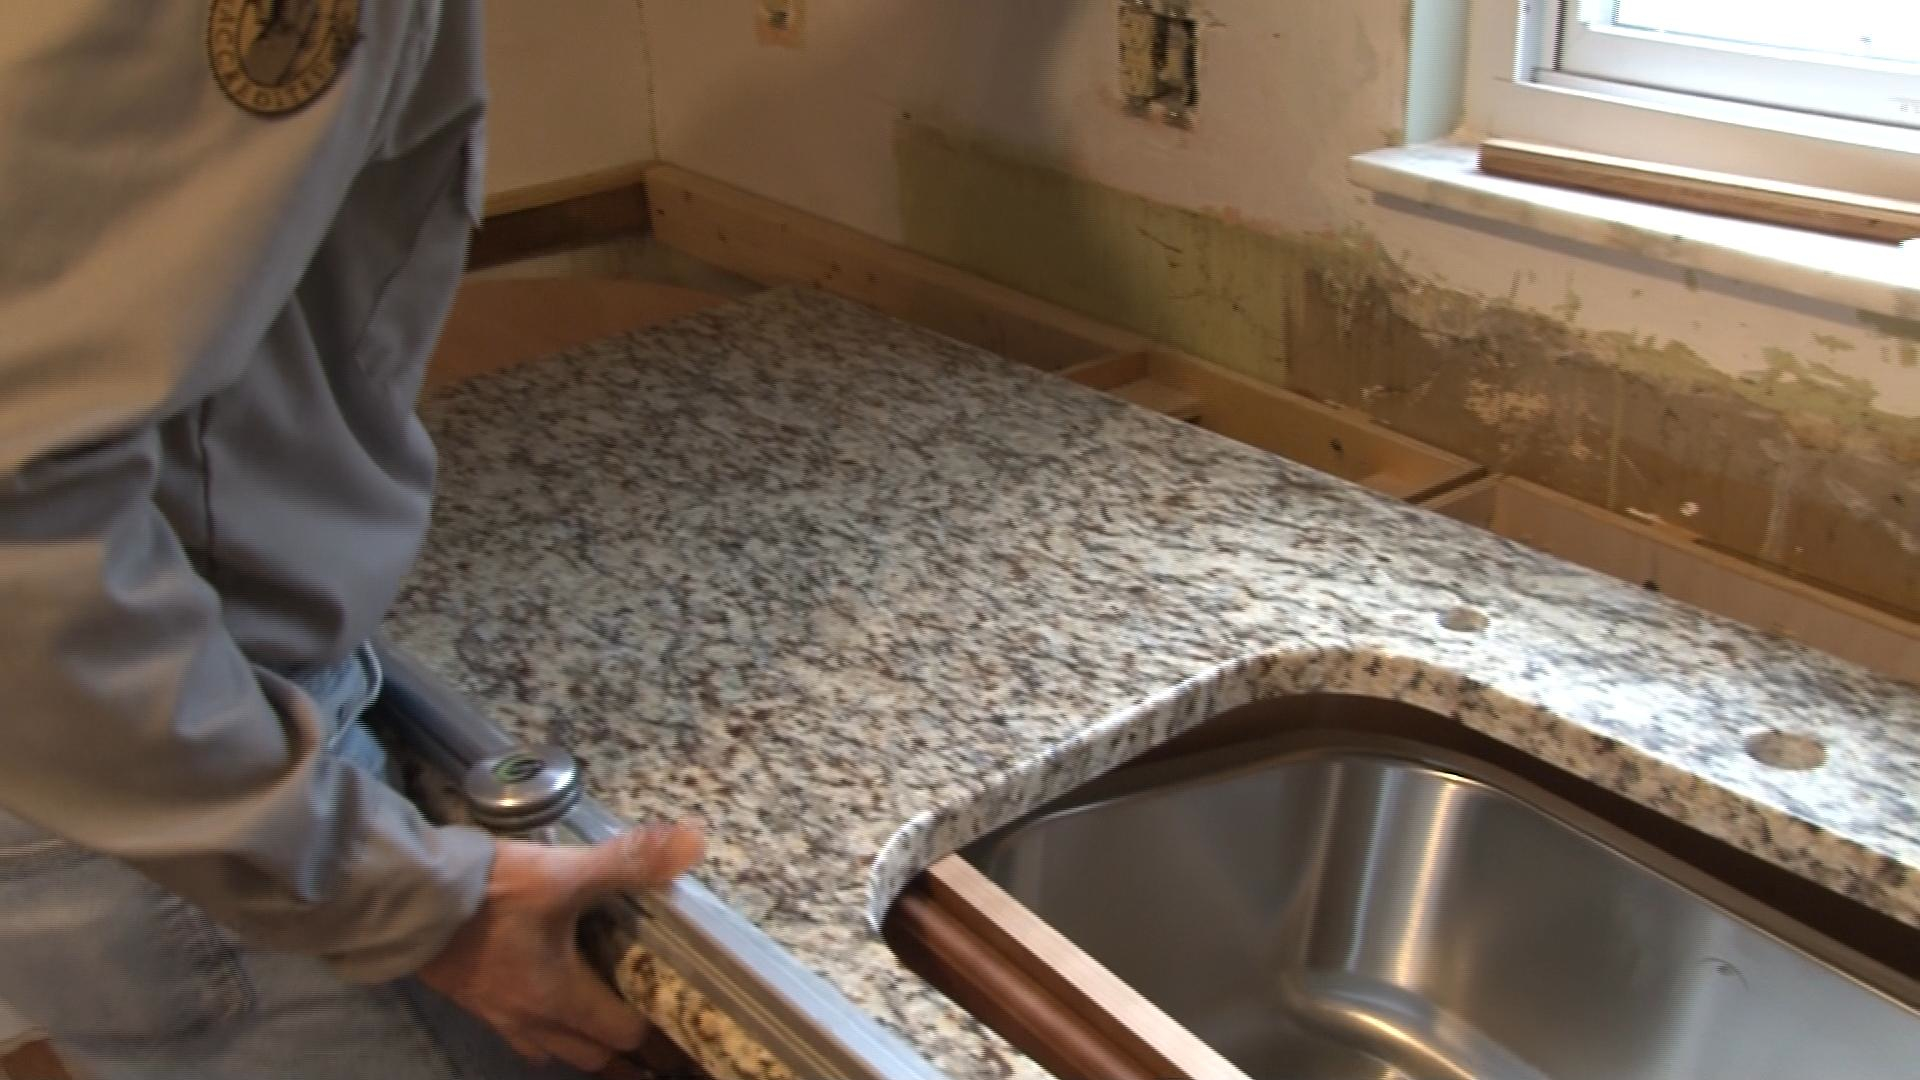 Granite Countertop Glue How To Install Granite Countertops Pro Construction Guide